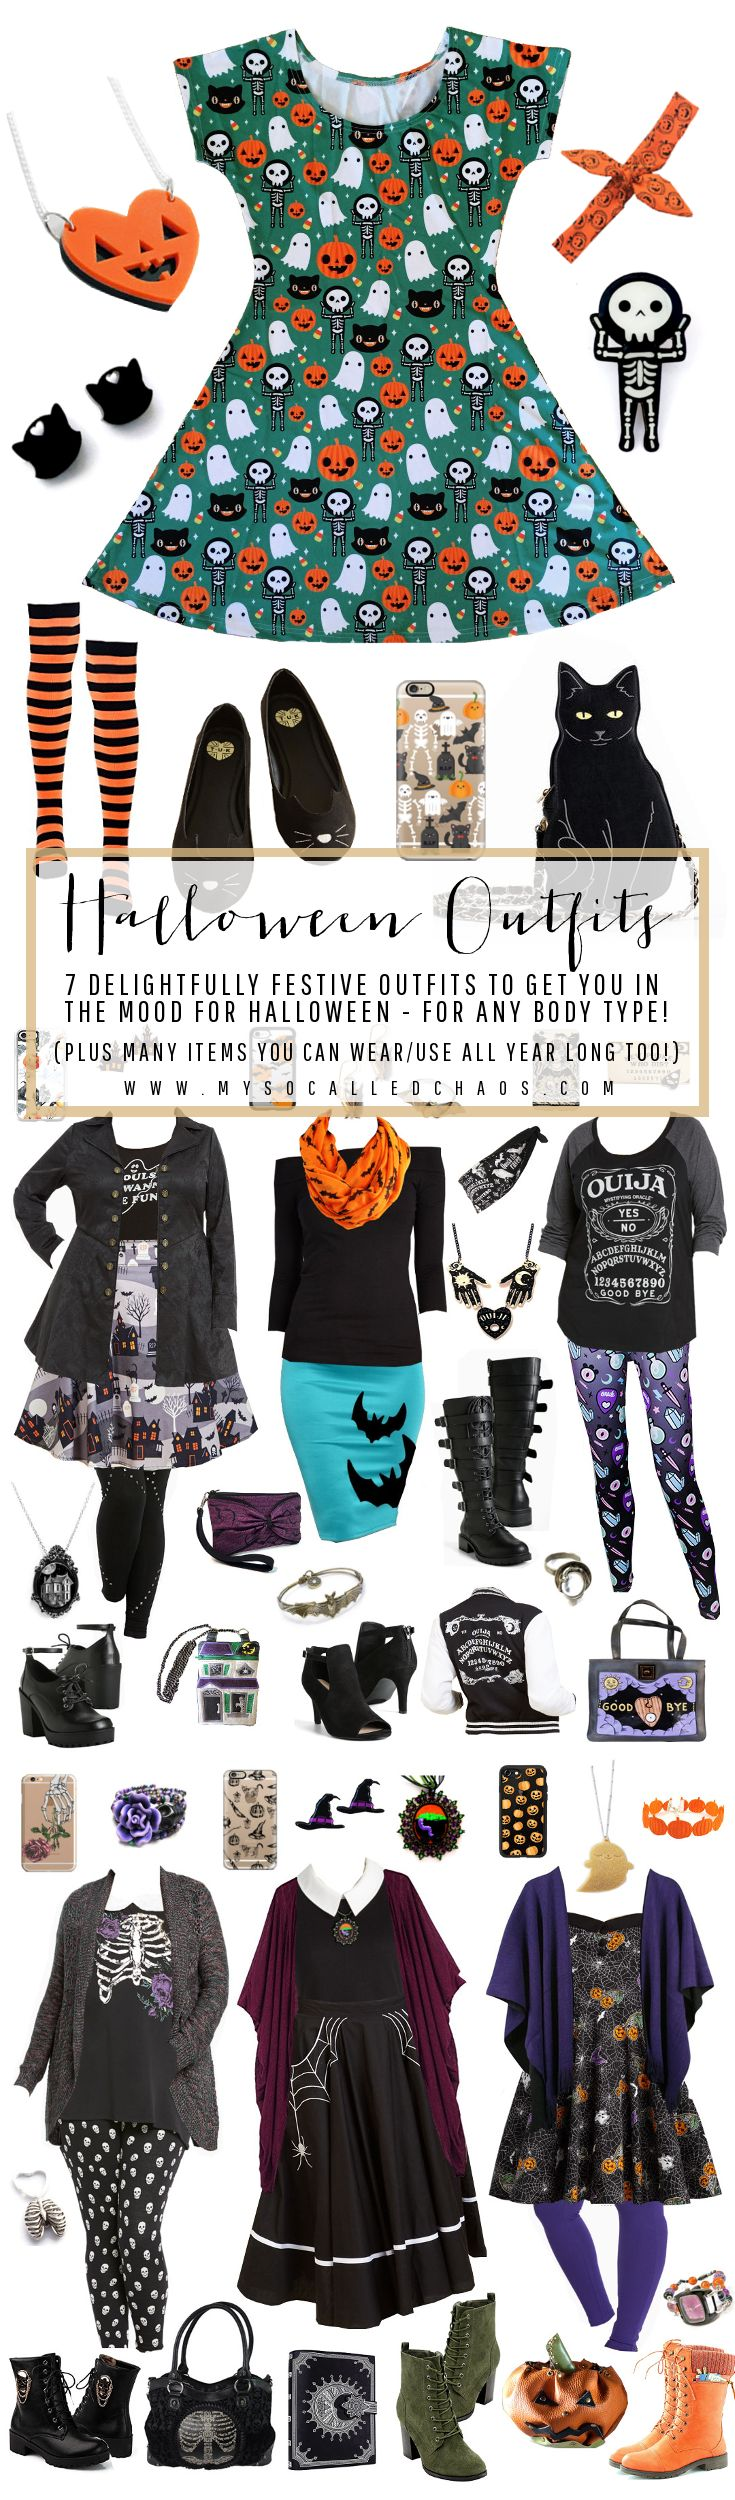 I am seriously so in love with all of these outfits!   7 Delightfully Festive Halloween Outfits for Any Body Type http://mysocalledchaos.com/2016/10/7-halloween-outfits.html